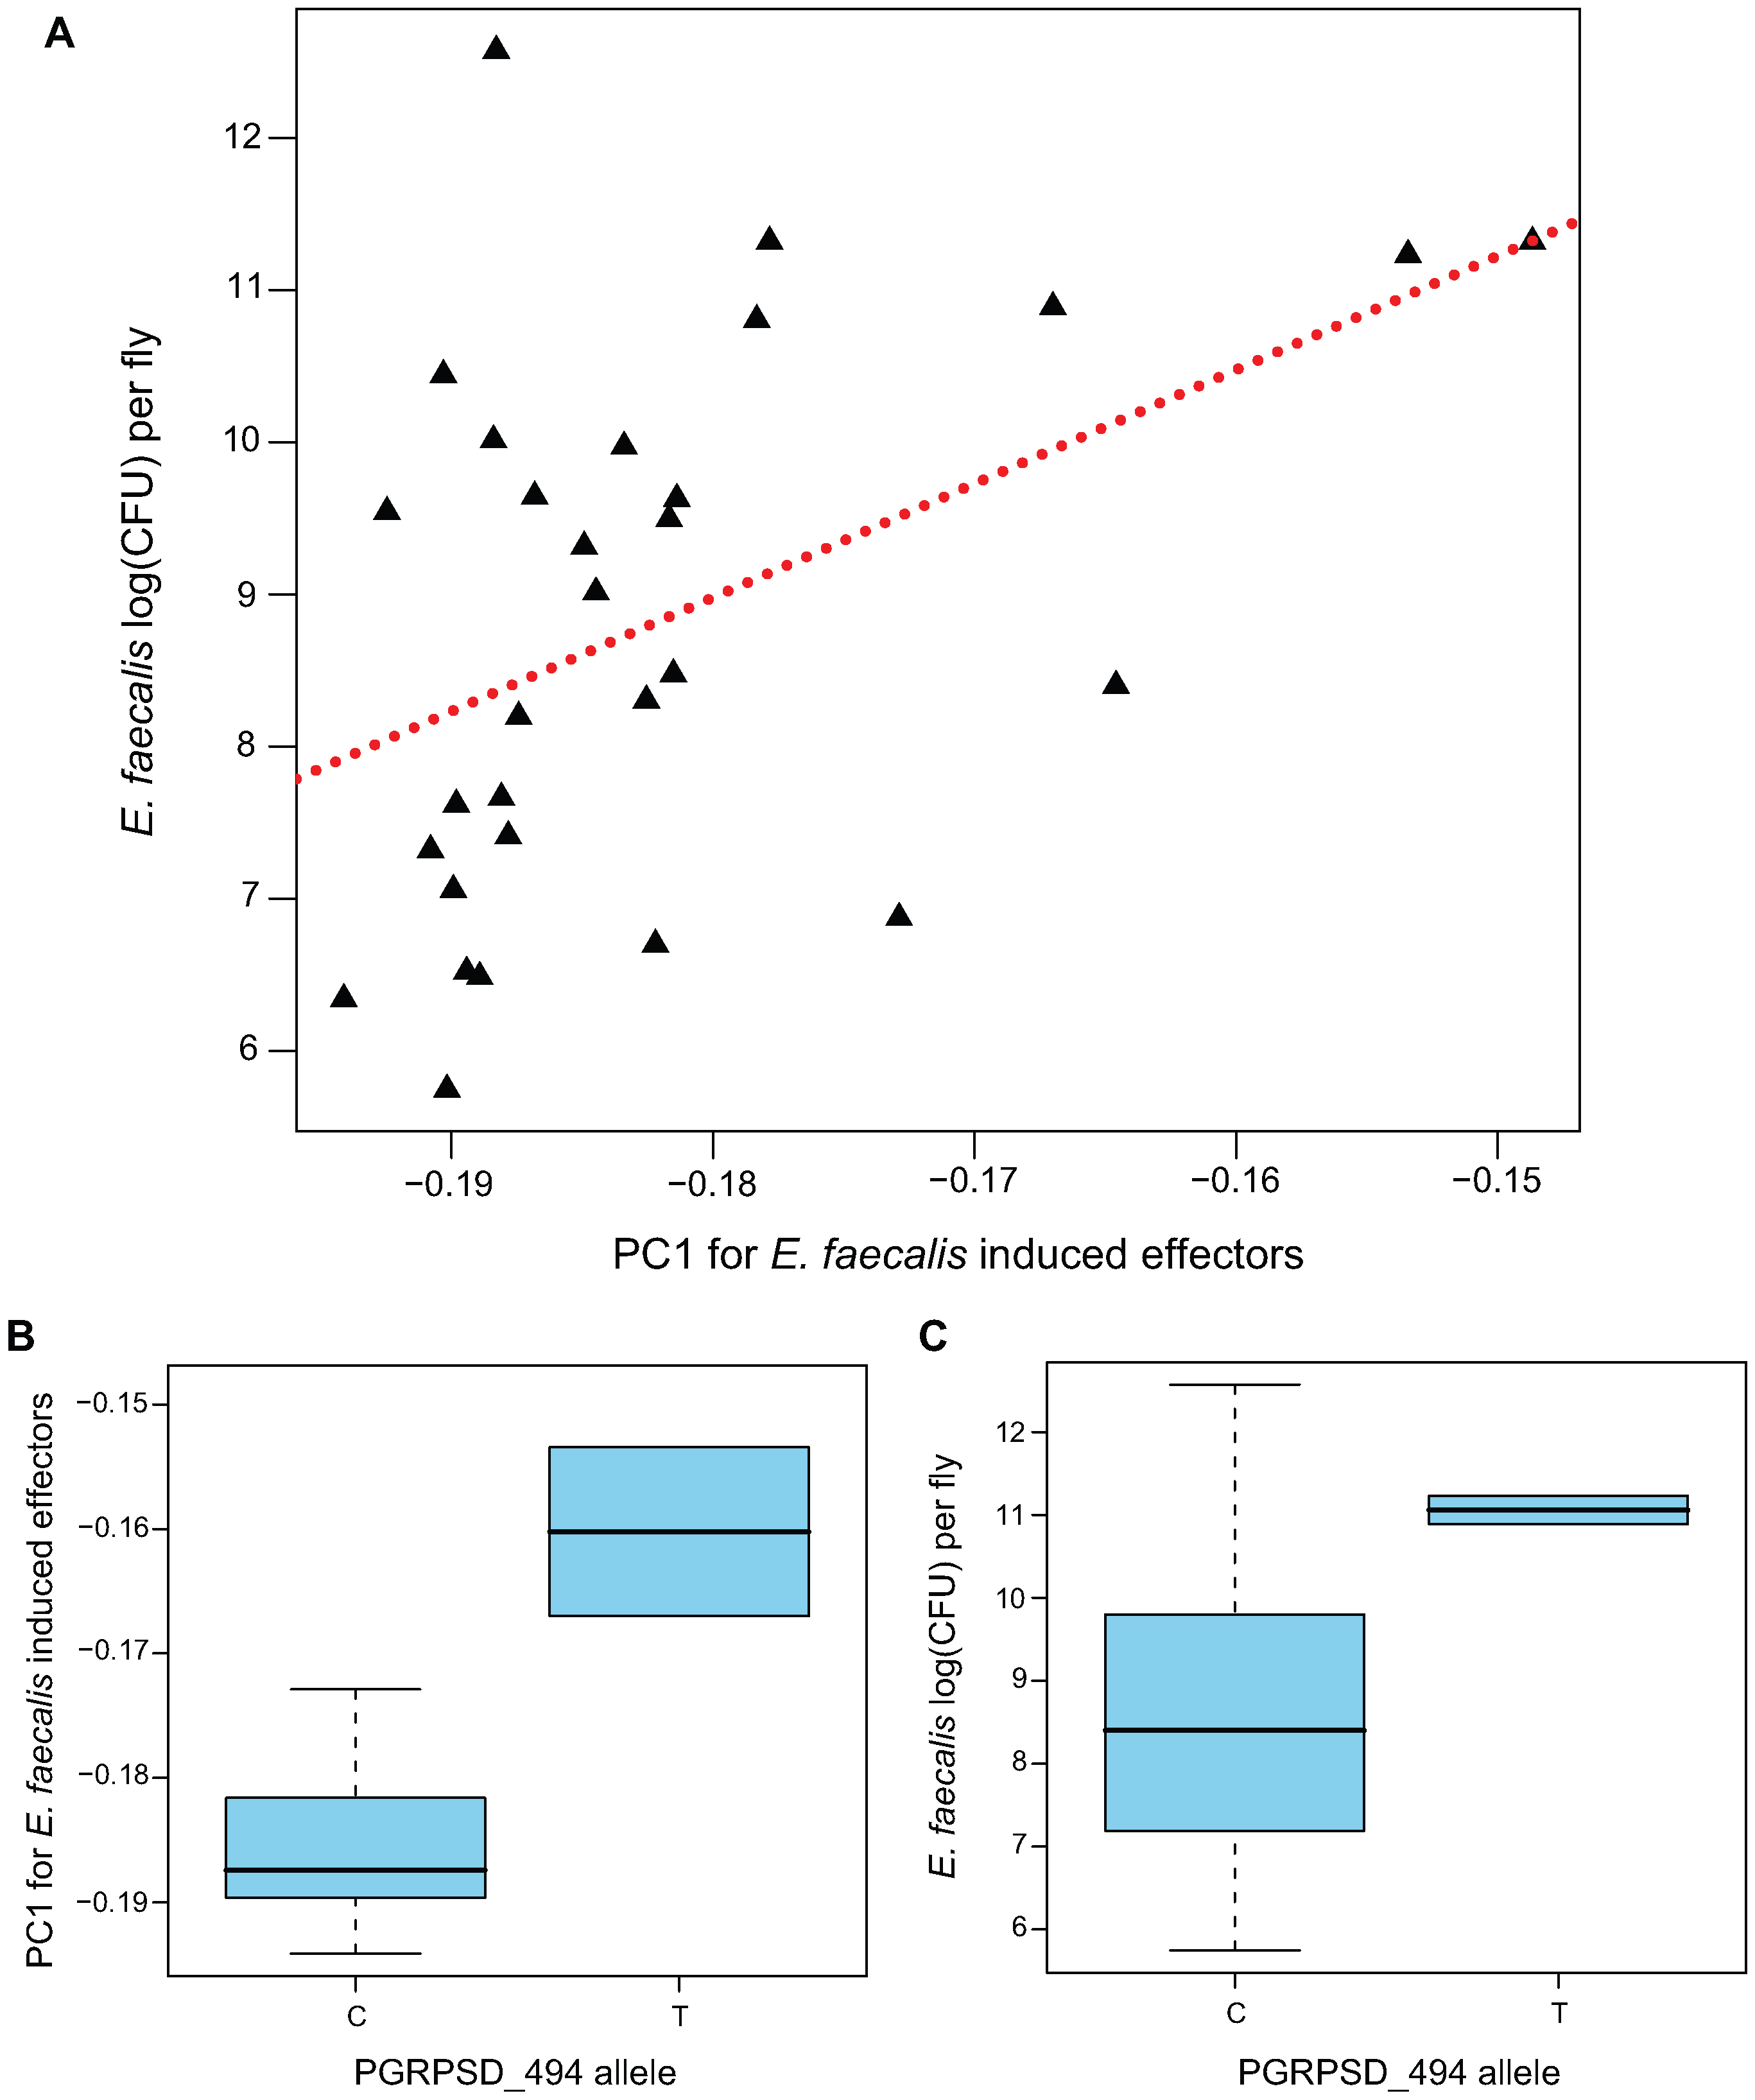 Genotype→gene expression→phenotype associations between PGRPSD_494 allele, Ef-induced expression of effectors, and <i>E. faecalis</i> bacterial load.